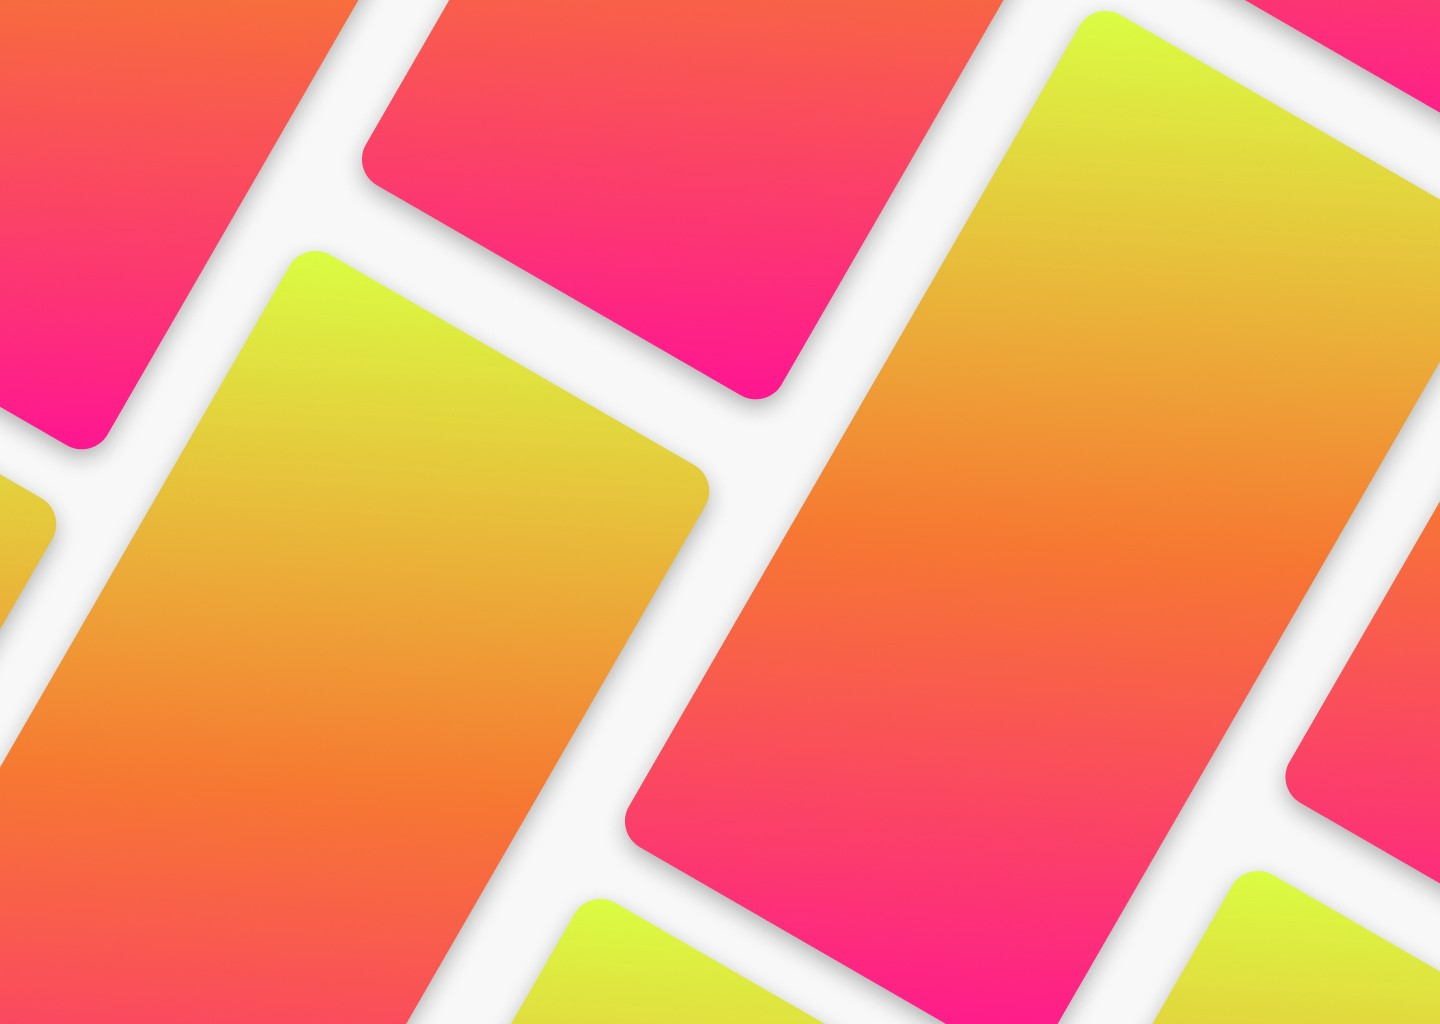 Animated gradient background on Android — part 1 / 2